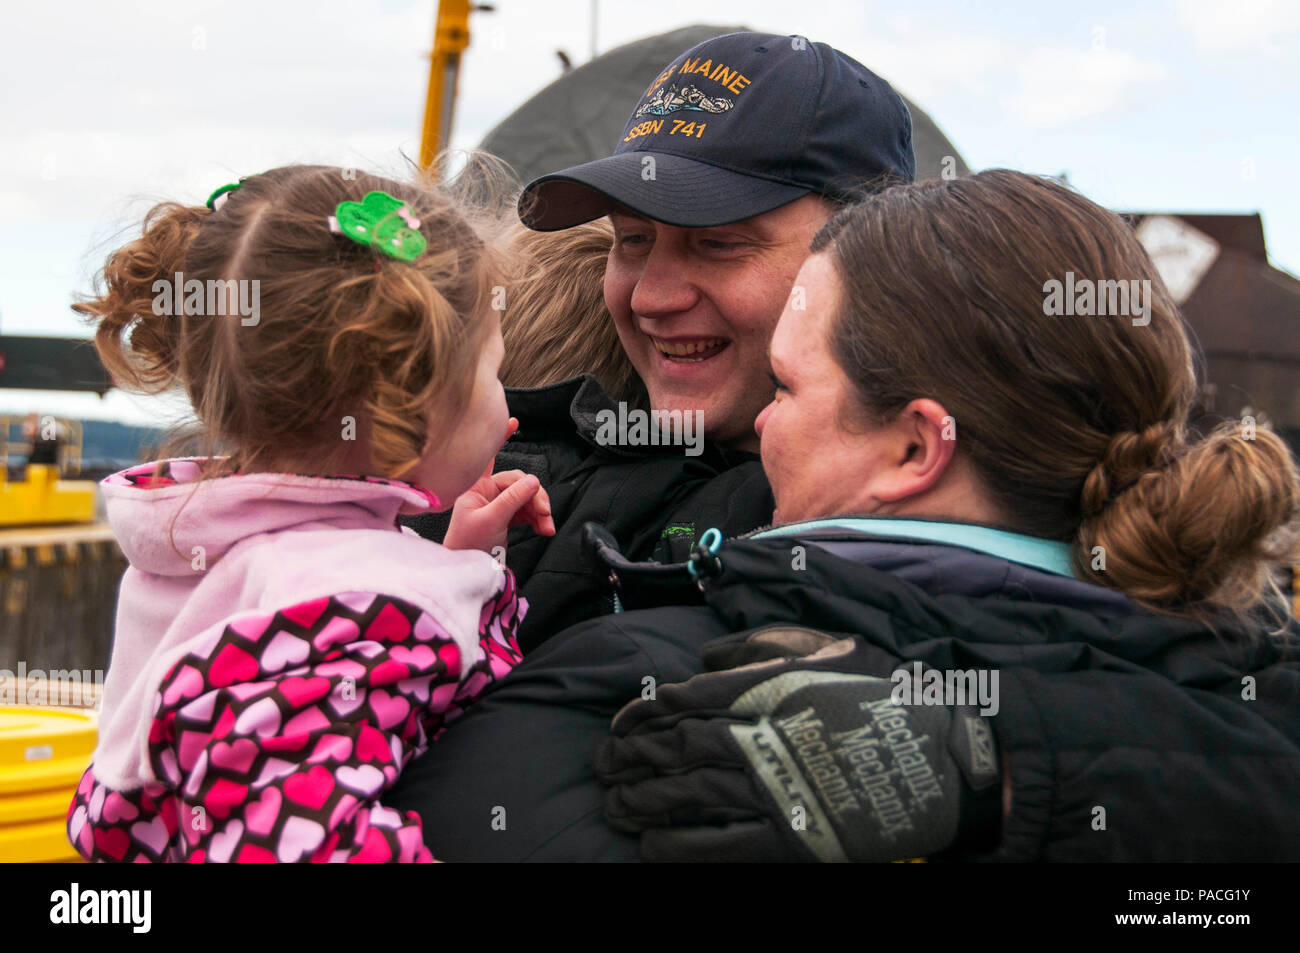 BANGOR, Wash. (March 16, 2016) – Electronics Technician (Nuclear) 2nd Class Adam Sidelinker, from Salisbury, N.C., assigned to the Blue crew of the Ohio-class ballistic-missile submarine USS Maine (SSBN 741), is welcomed home to Naval Base Kitsap-Bangor by his family following a routine strategic deterrent patrol. Maine is one of eight ballistic-missile submarines stationed at the base providing the most survivable leg of the strategic deterrence triad for the United States. (U.S. Navy photo by Mass Communication Specialist 2nd Class Amanda R. Gray/Released) - Stock Image